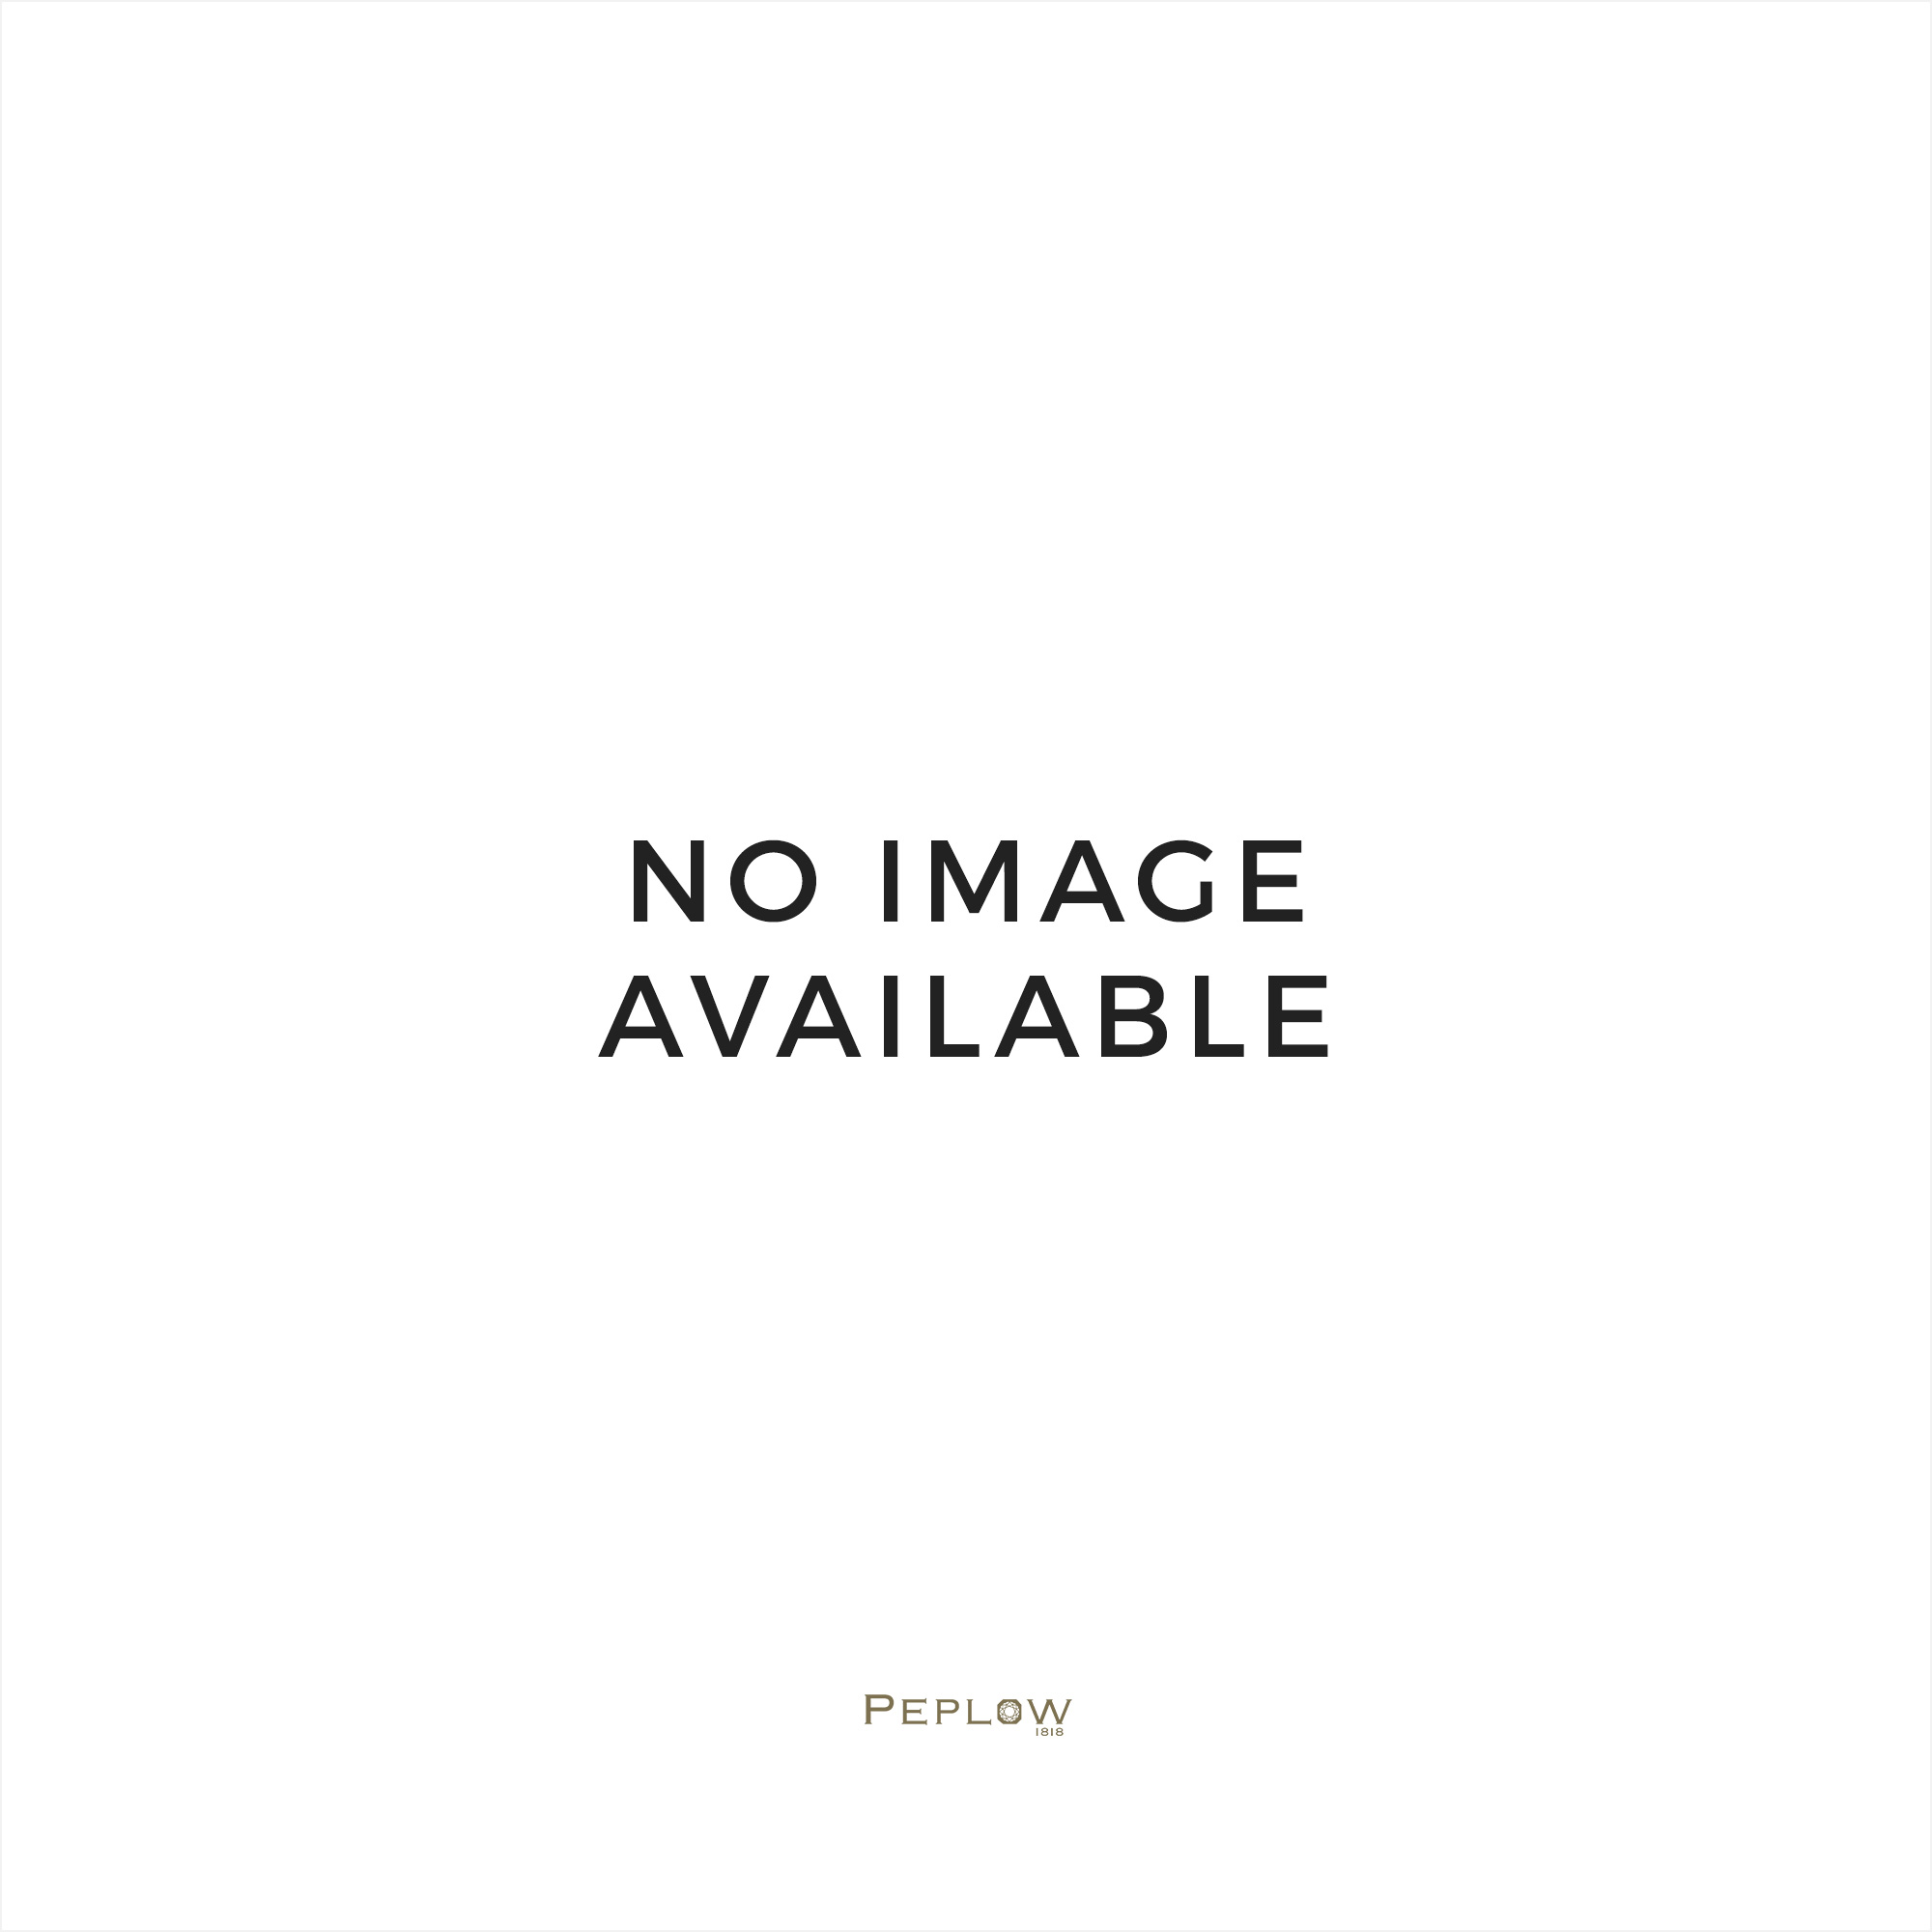 Omega Watches Omega Gents Seamaster Bullhead Co-Axial Chronograph Watch